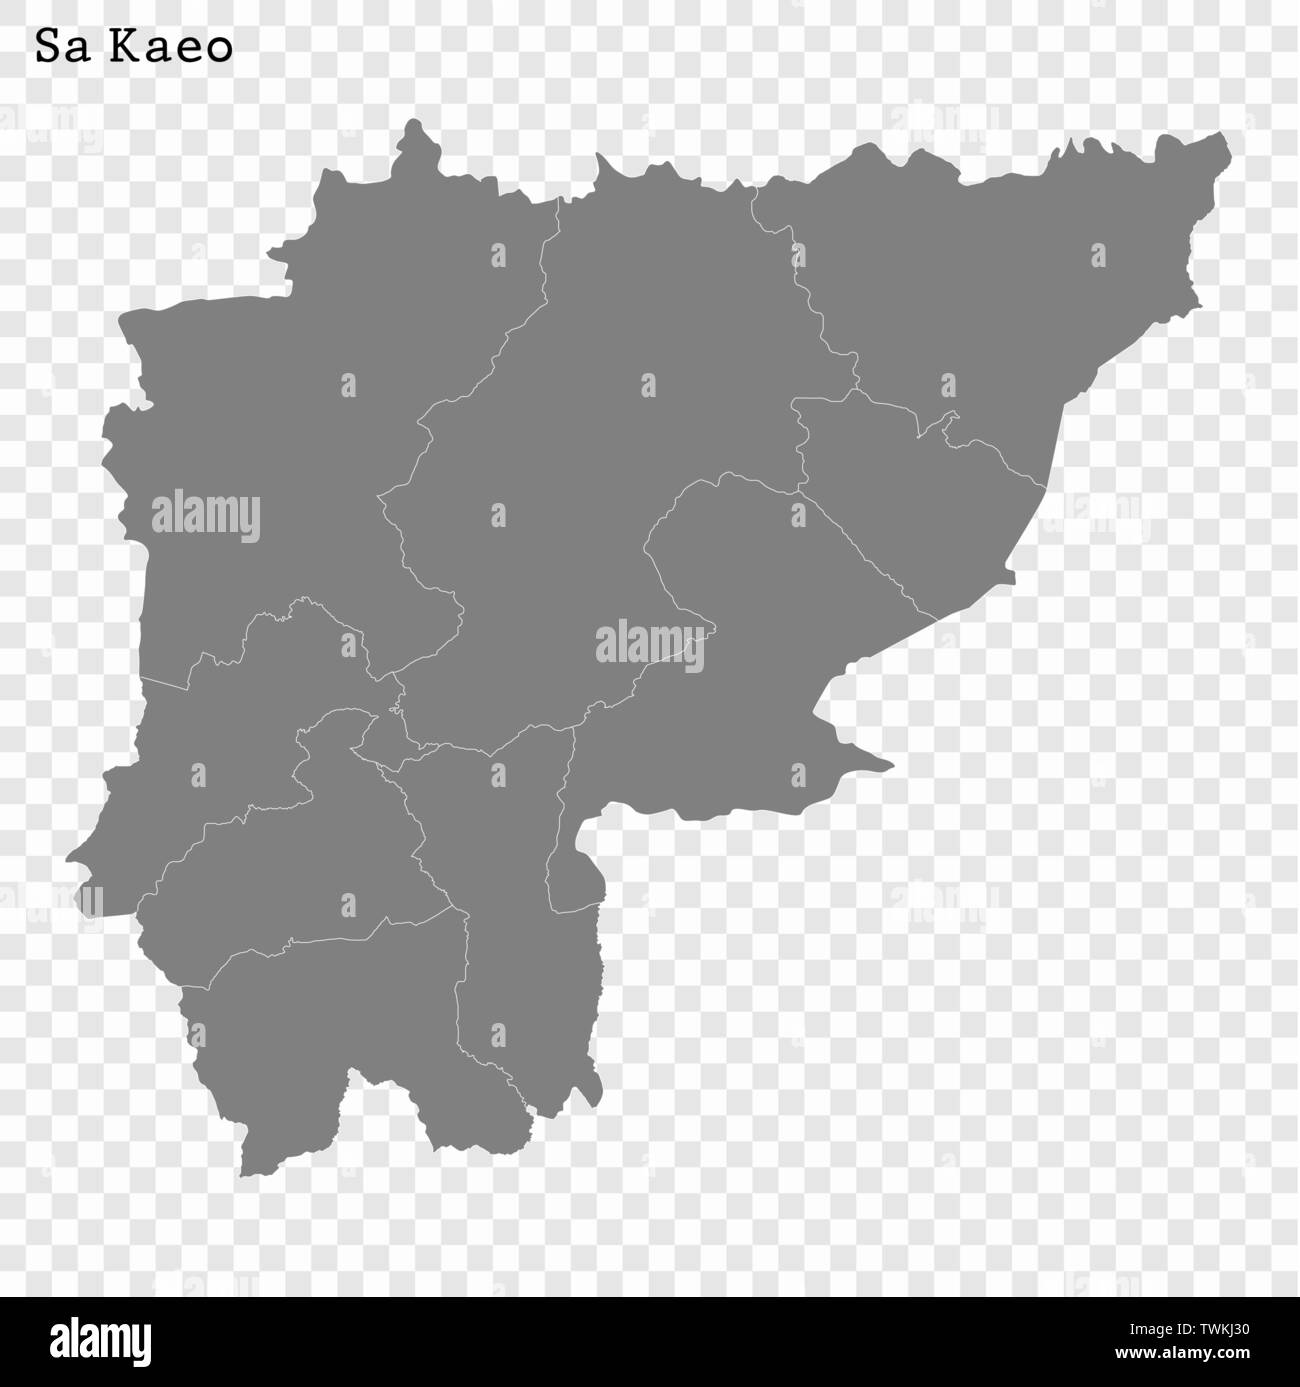 High Quality map of Sa Kaeo is a province of Thailand, with borders of the districts - Stock Vector